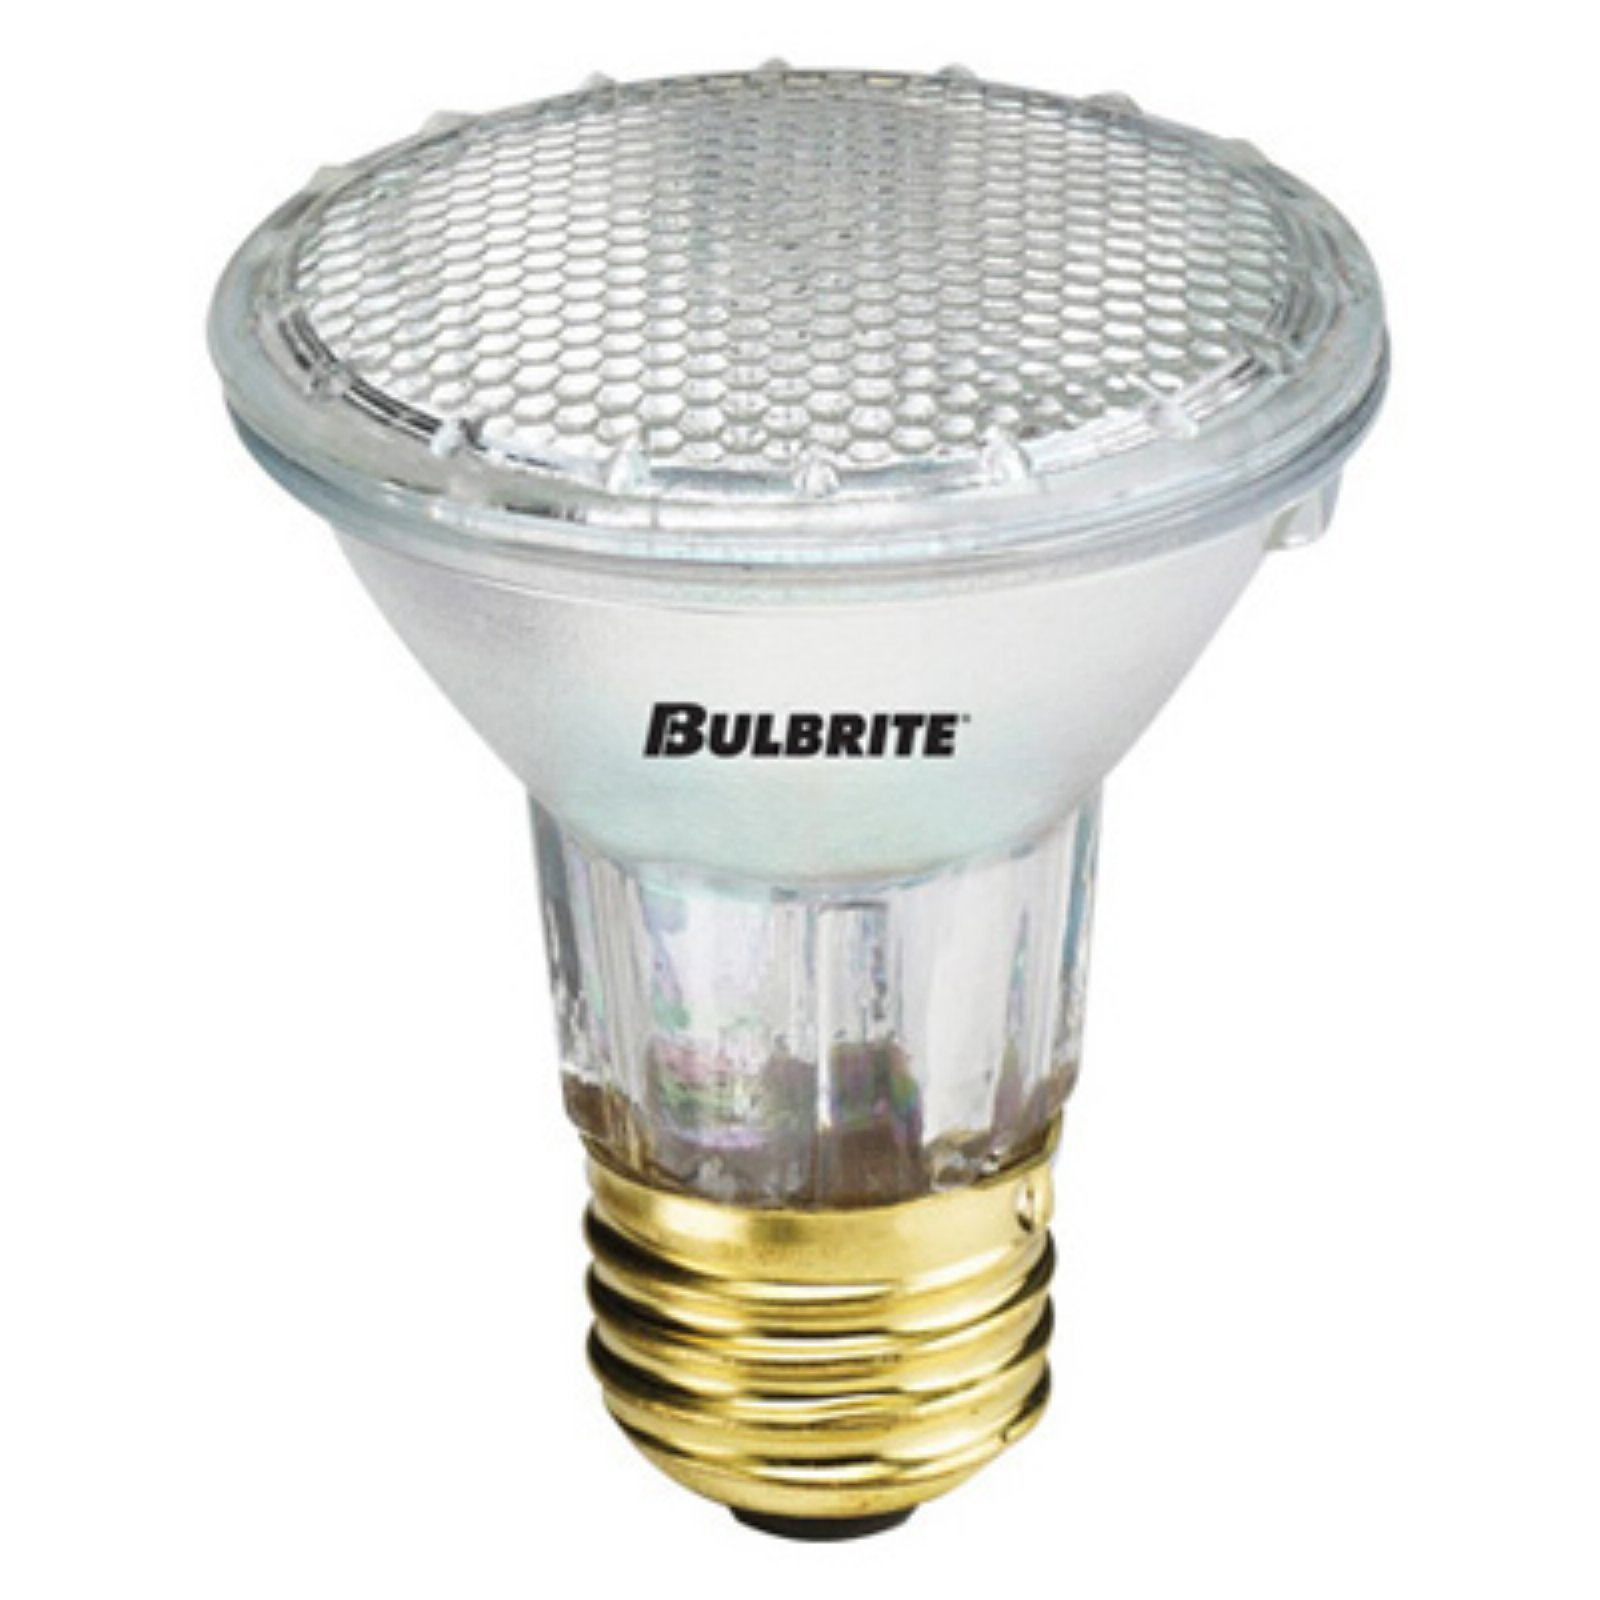 Bulbrite Warm White Dimmable PAR16 Halogen Light Bulb - 6 pk.